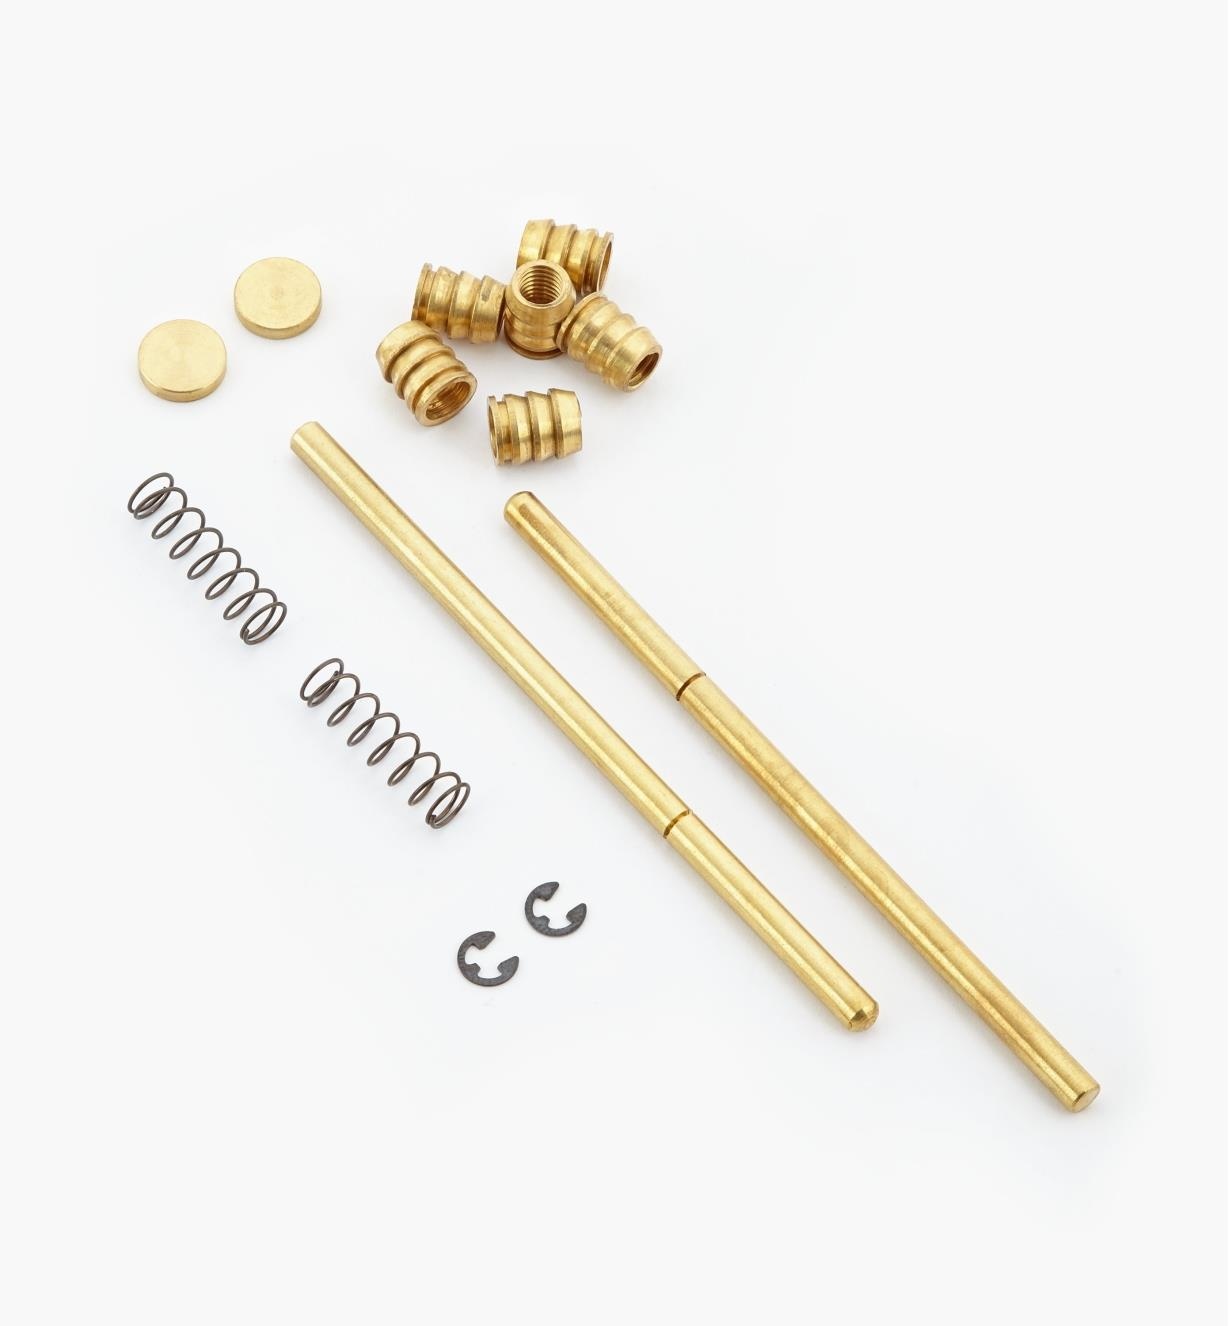 Locking Spring Pins, pair